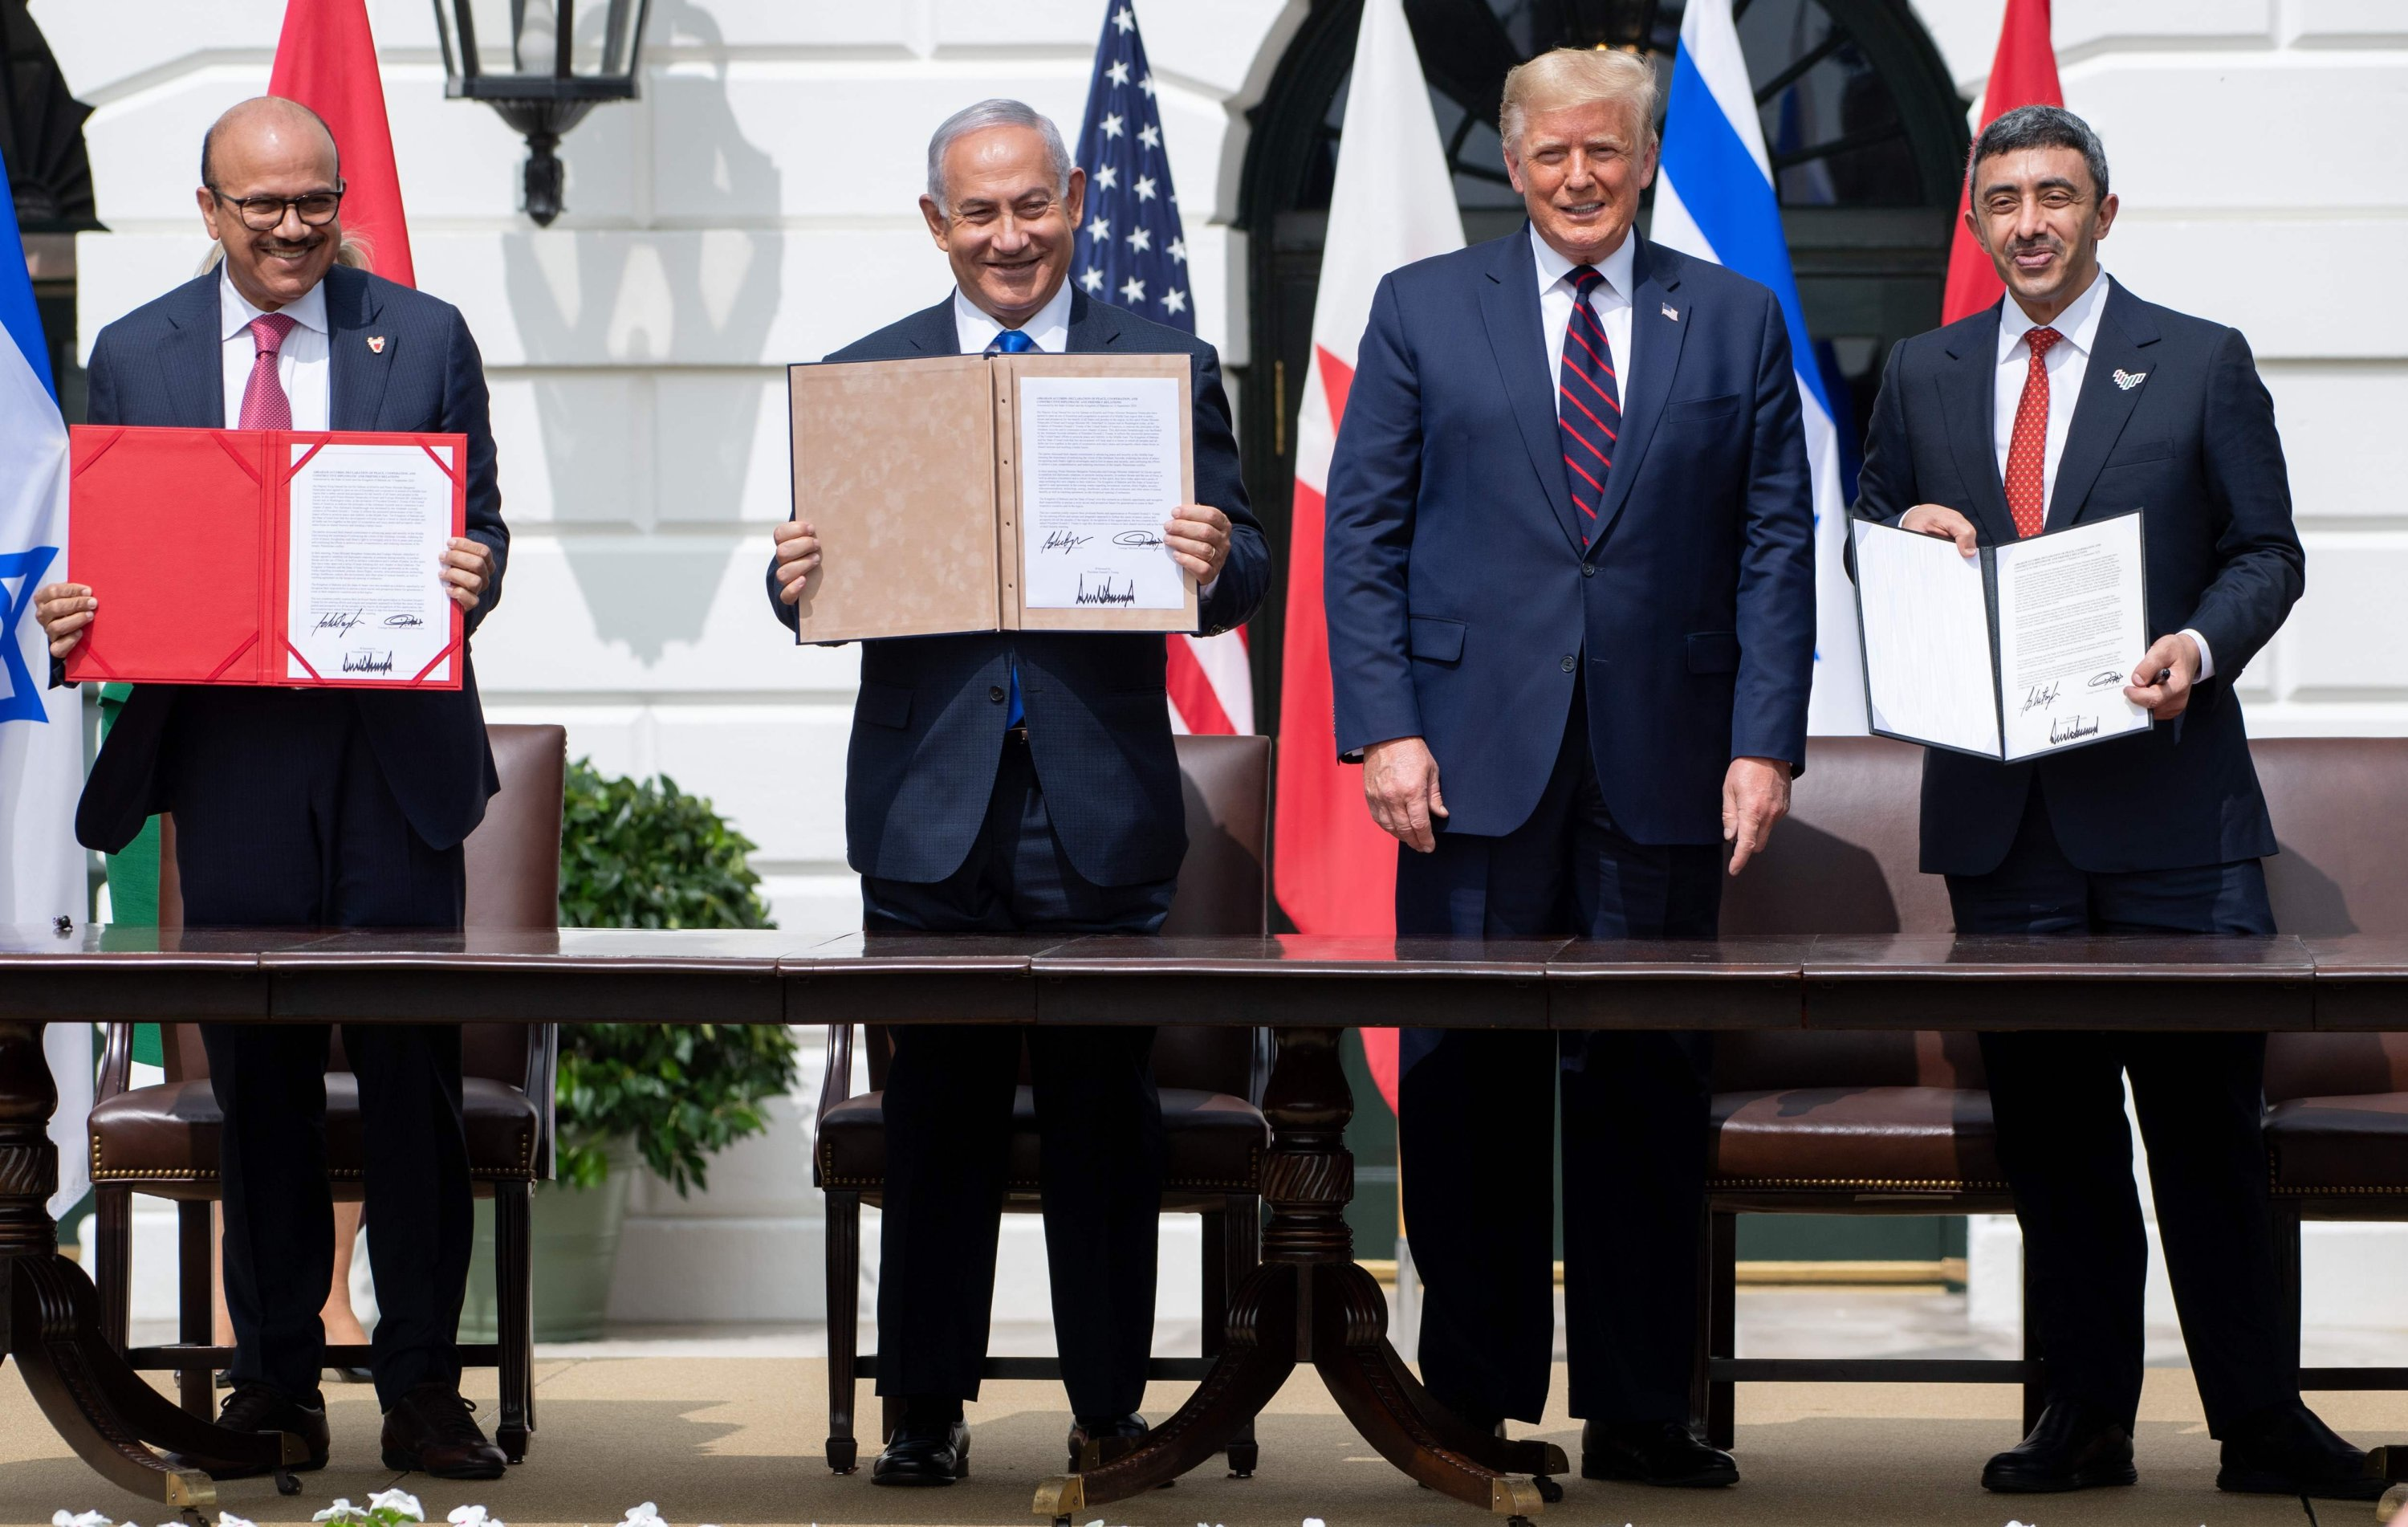 Israeli Prime Minister Benjamin Netanyahu and the foreign ministers of Bahrain and the United Arab Emirates arrived at the White House to sign historic accords normalizing ties between the Jewish and Arab states, Washington D.C., U.S., Sept. 15, 2020. (AFP Photo)